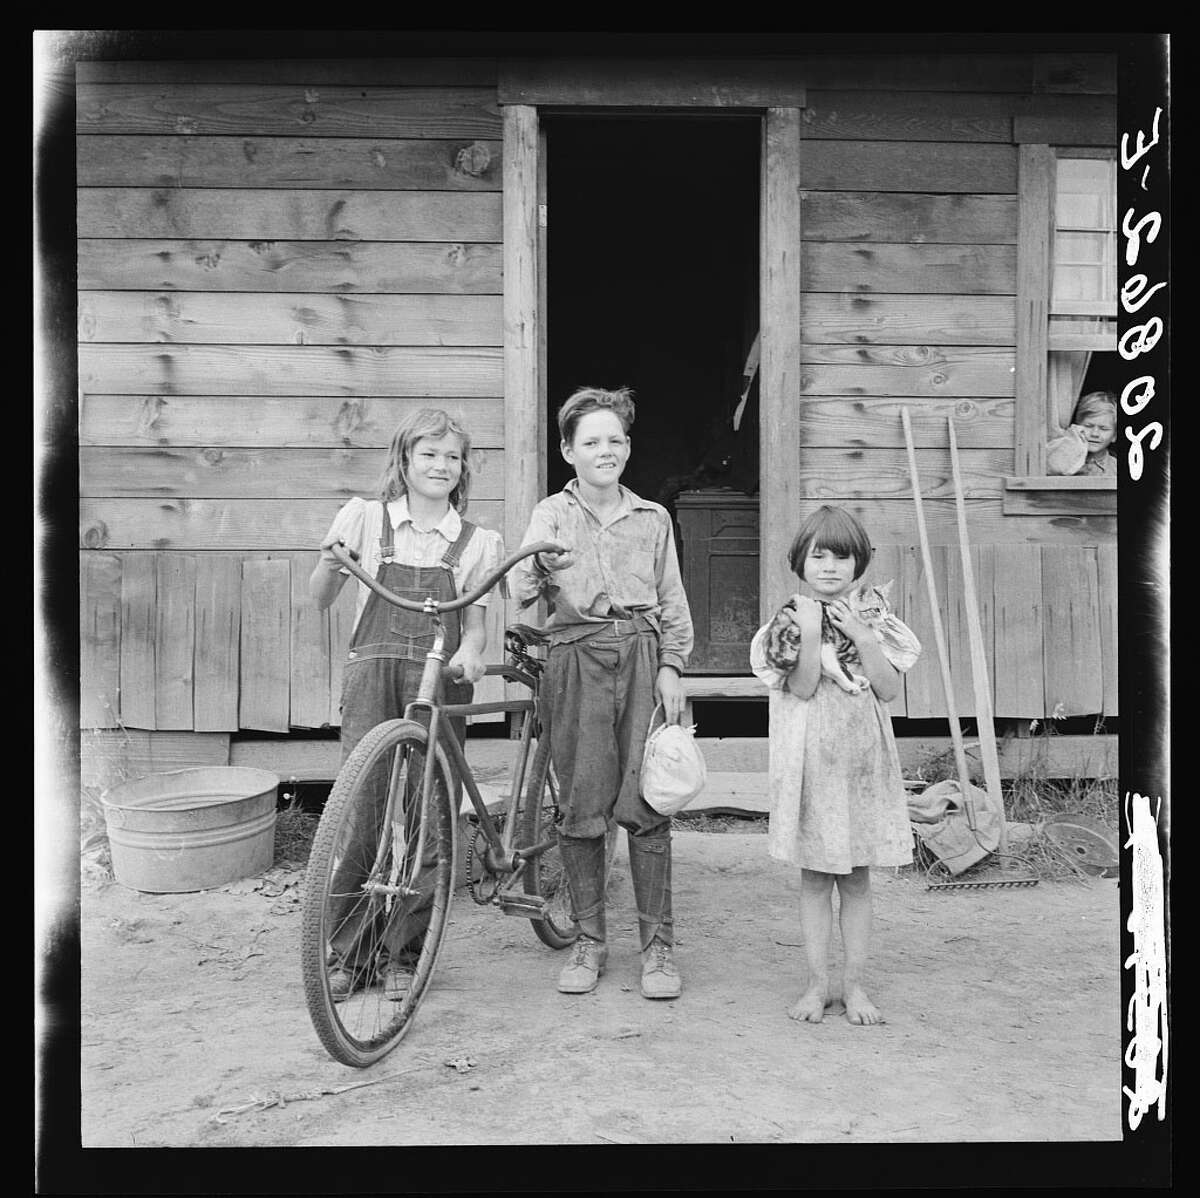 Original caption: Three of the four Arnold children. The oldest boy earned the money to buy his bicycle. Western Washington, Thurston County, Michigan Hill. Photo by Dorothea Lange, August 1939.